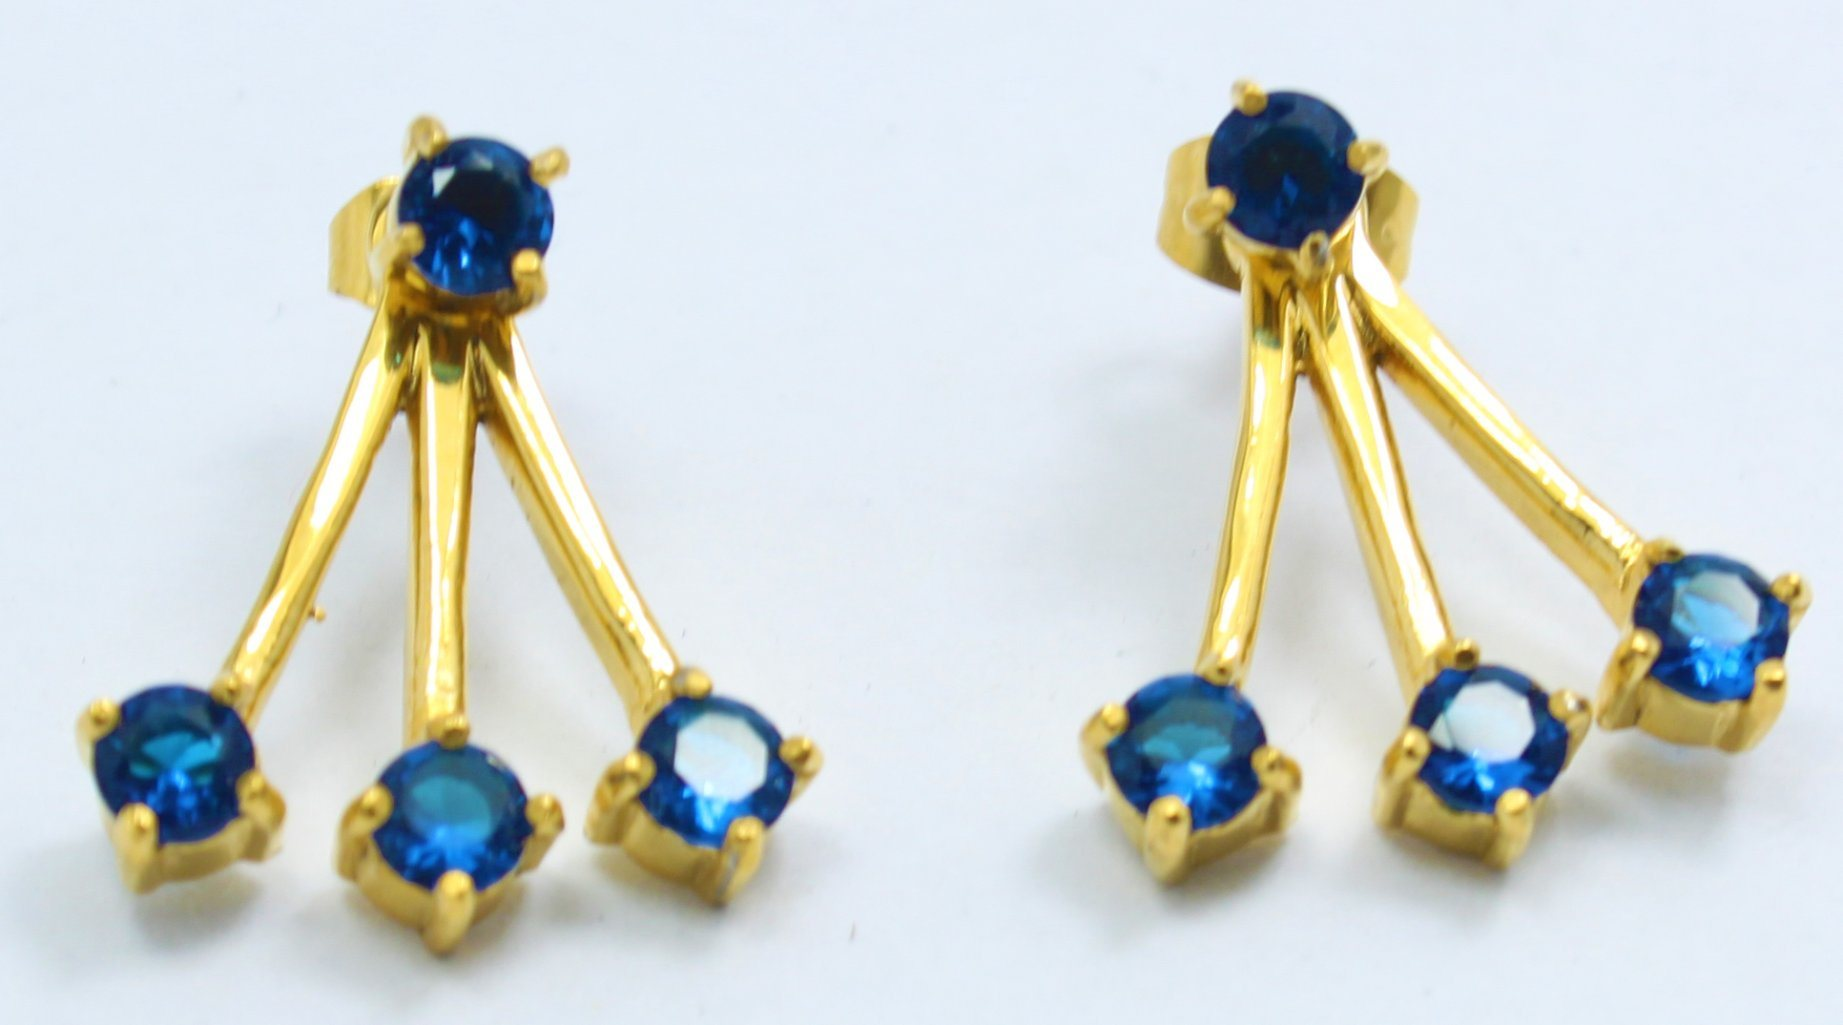 Fashion High Quality CZ Stones Jewelry 316L Stainless Steel Earring